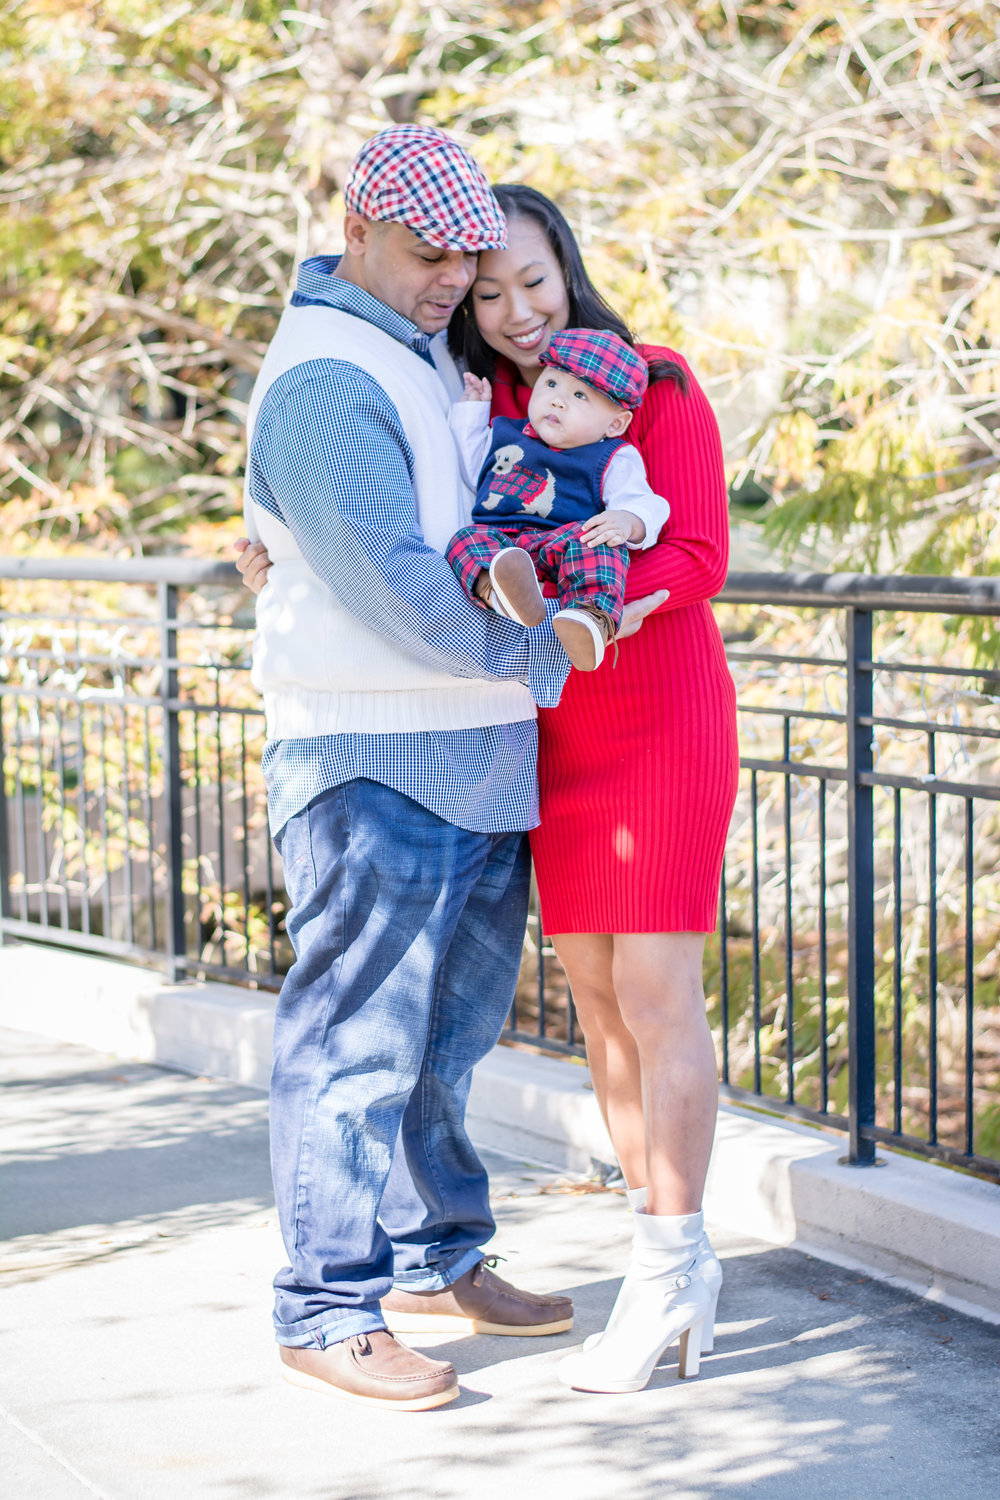 baldwin-park-orlando-family-session-14.jpg